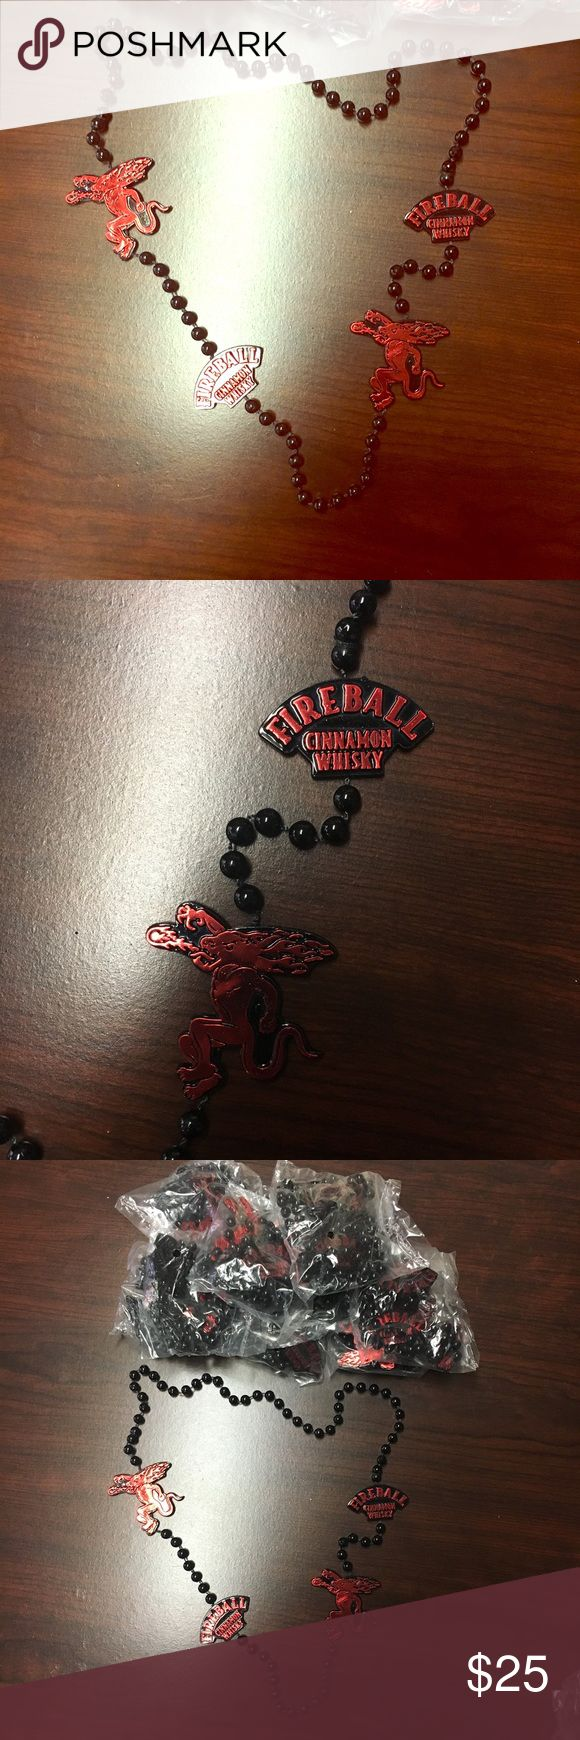 1(0pc) FireBall Whiskey Party Bead Necklaces Comes with 10 necklaces. New Other